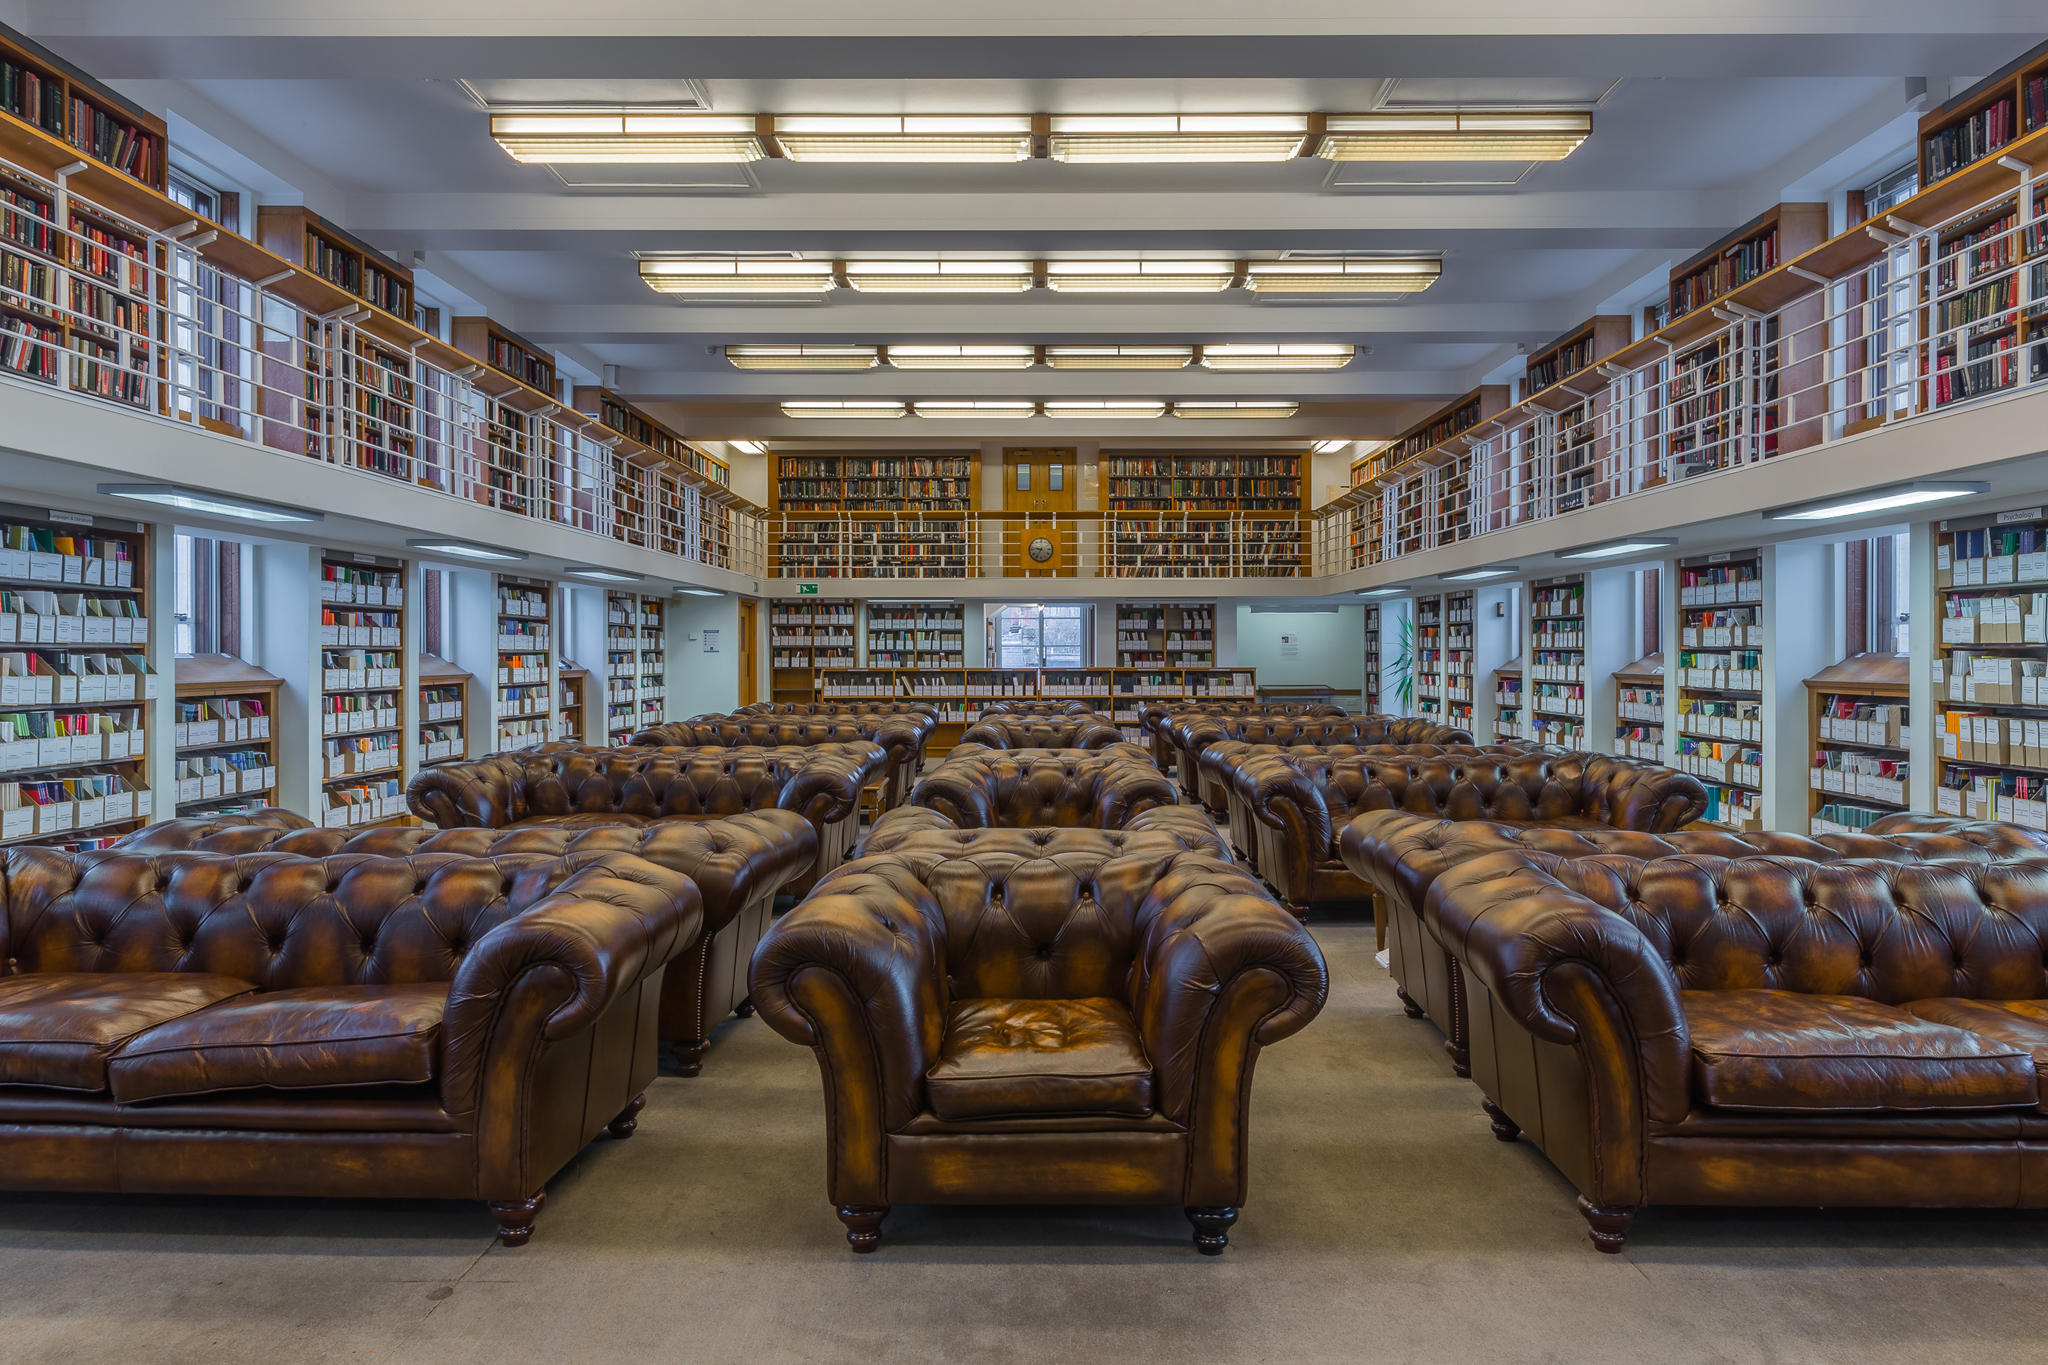 Senate House reading room